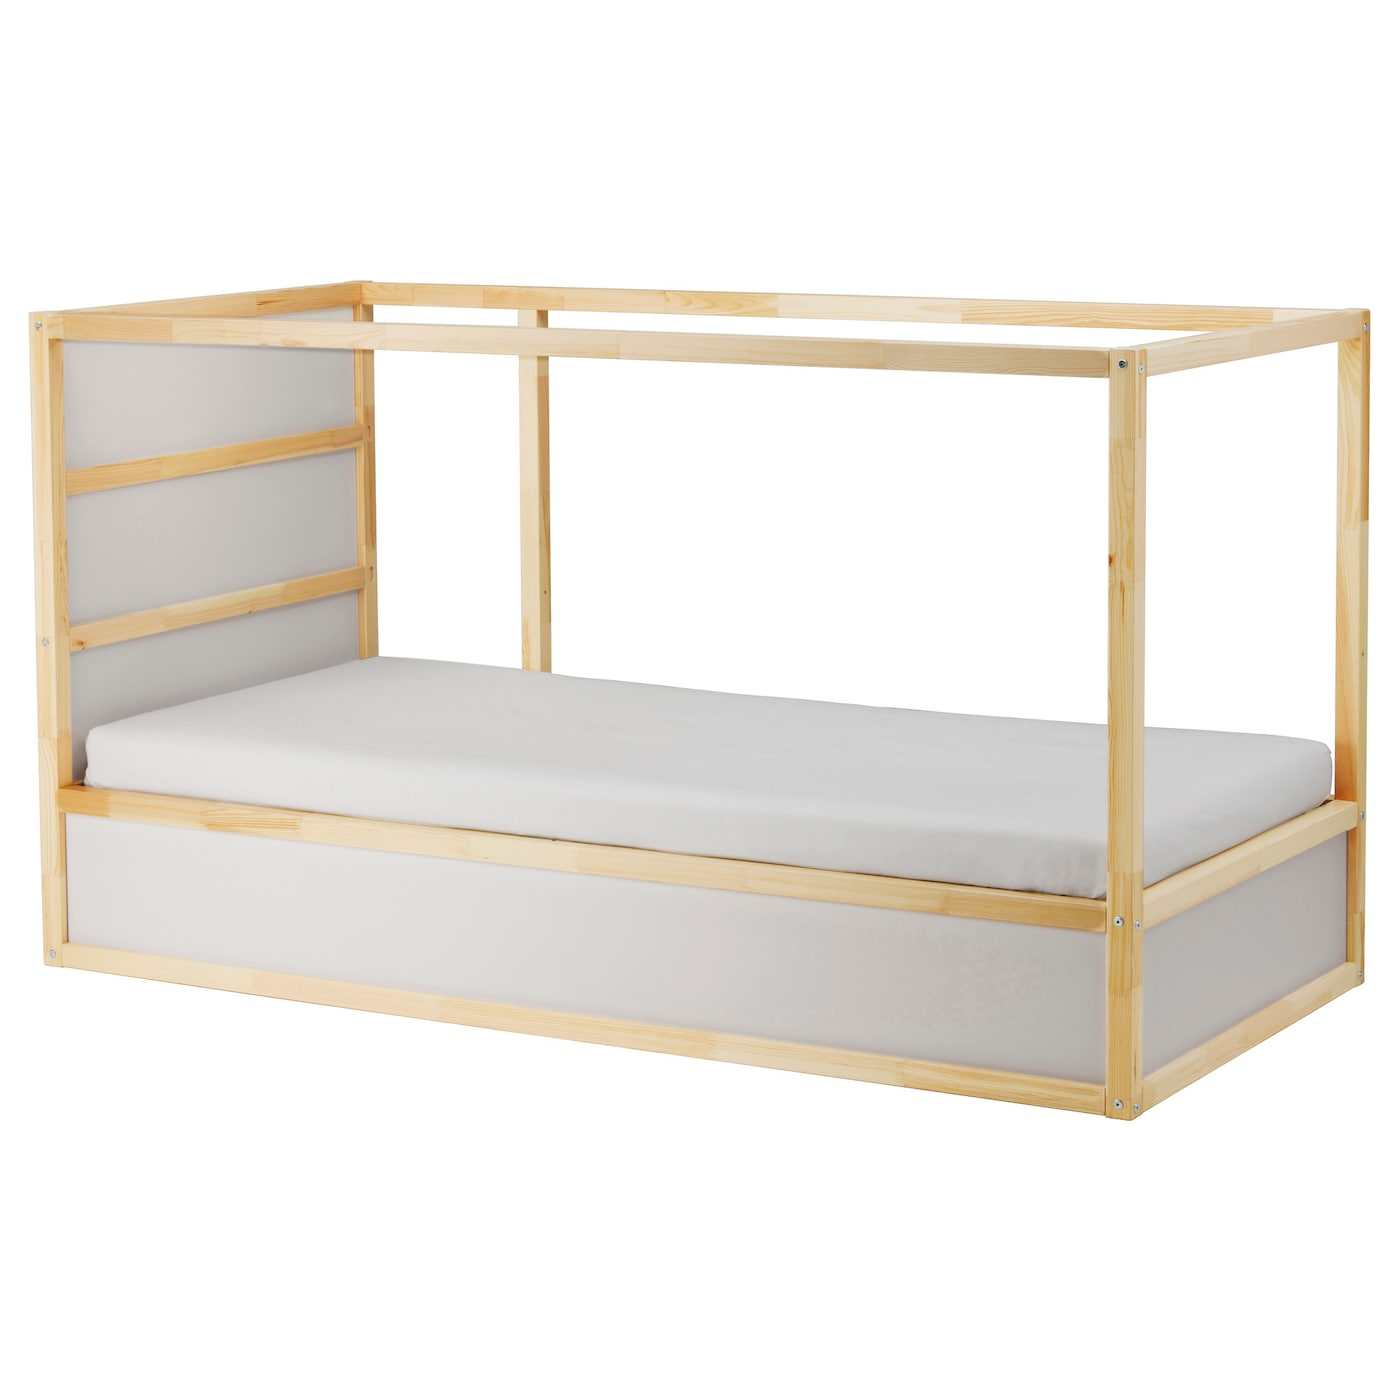 kura reversible bed white pine 90 x 200 cm ikea 12160 | kura reversible bed white pine 0179752 pe331952 s5